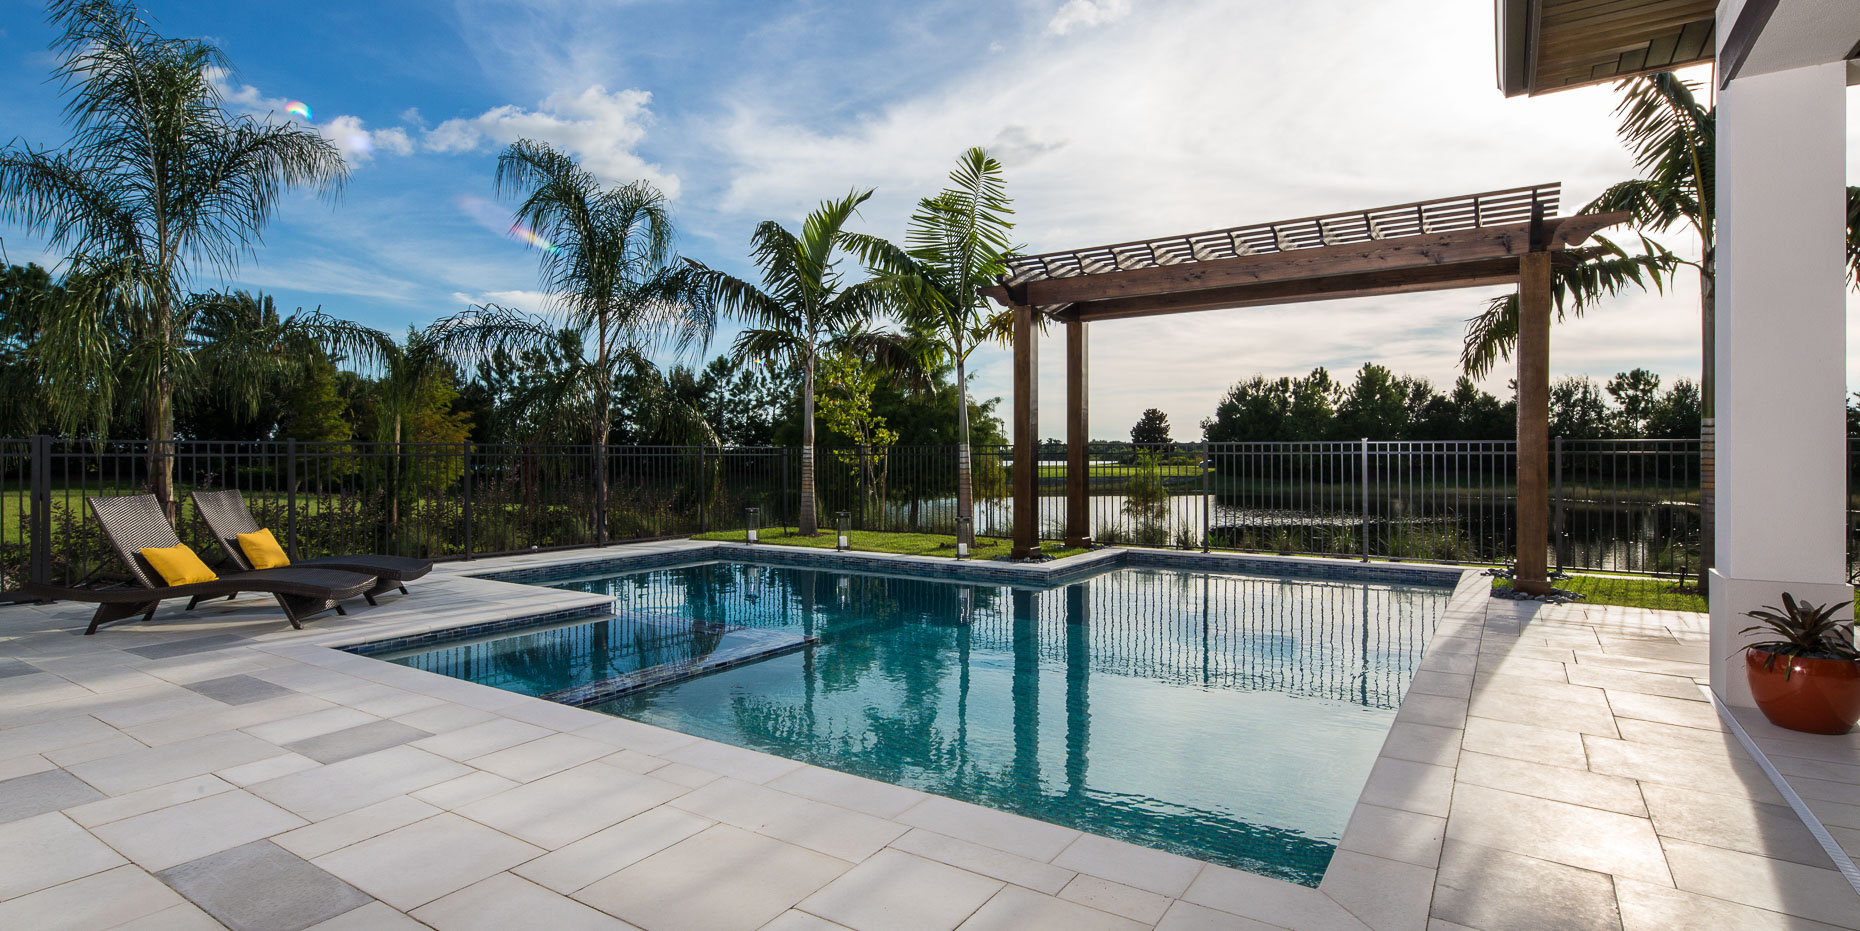 Pool Area, Coastal West Indies Architecture - Mark Borosch Photography - Lakewood Ranch, FL